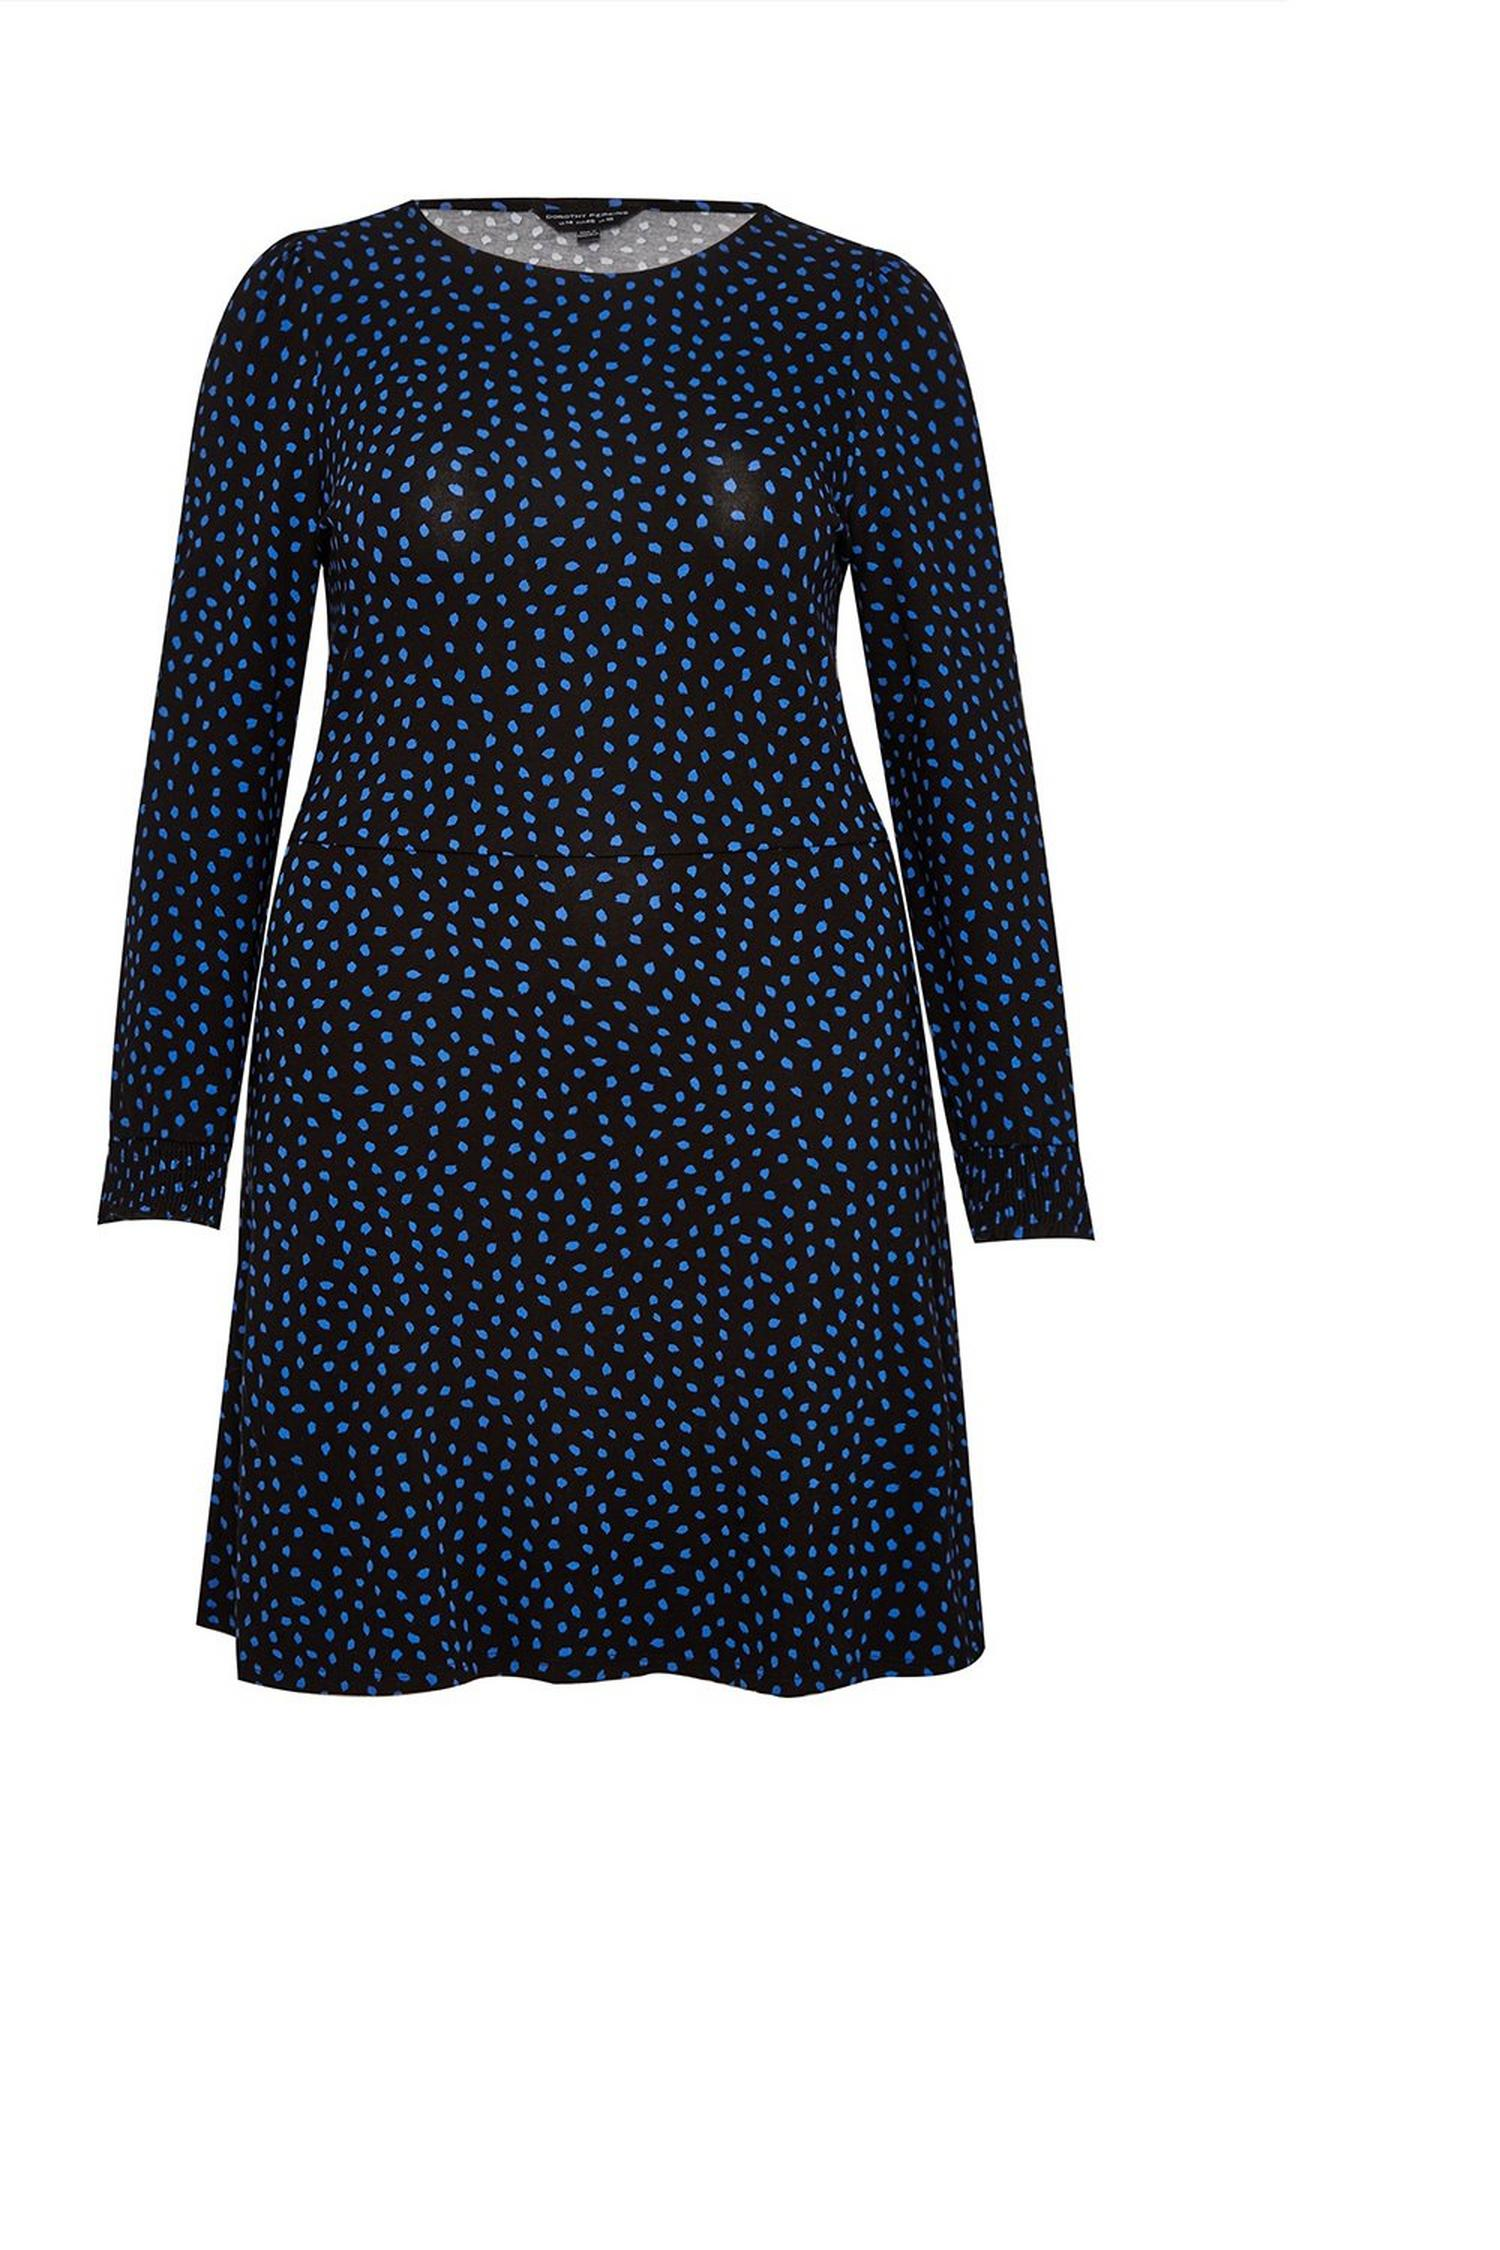 105 Curve Navy Spot Dress image number 1